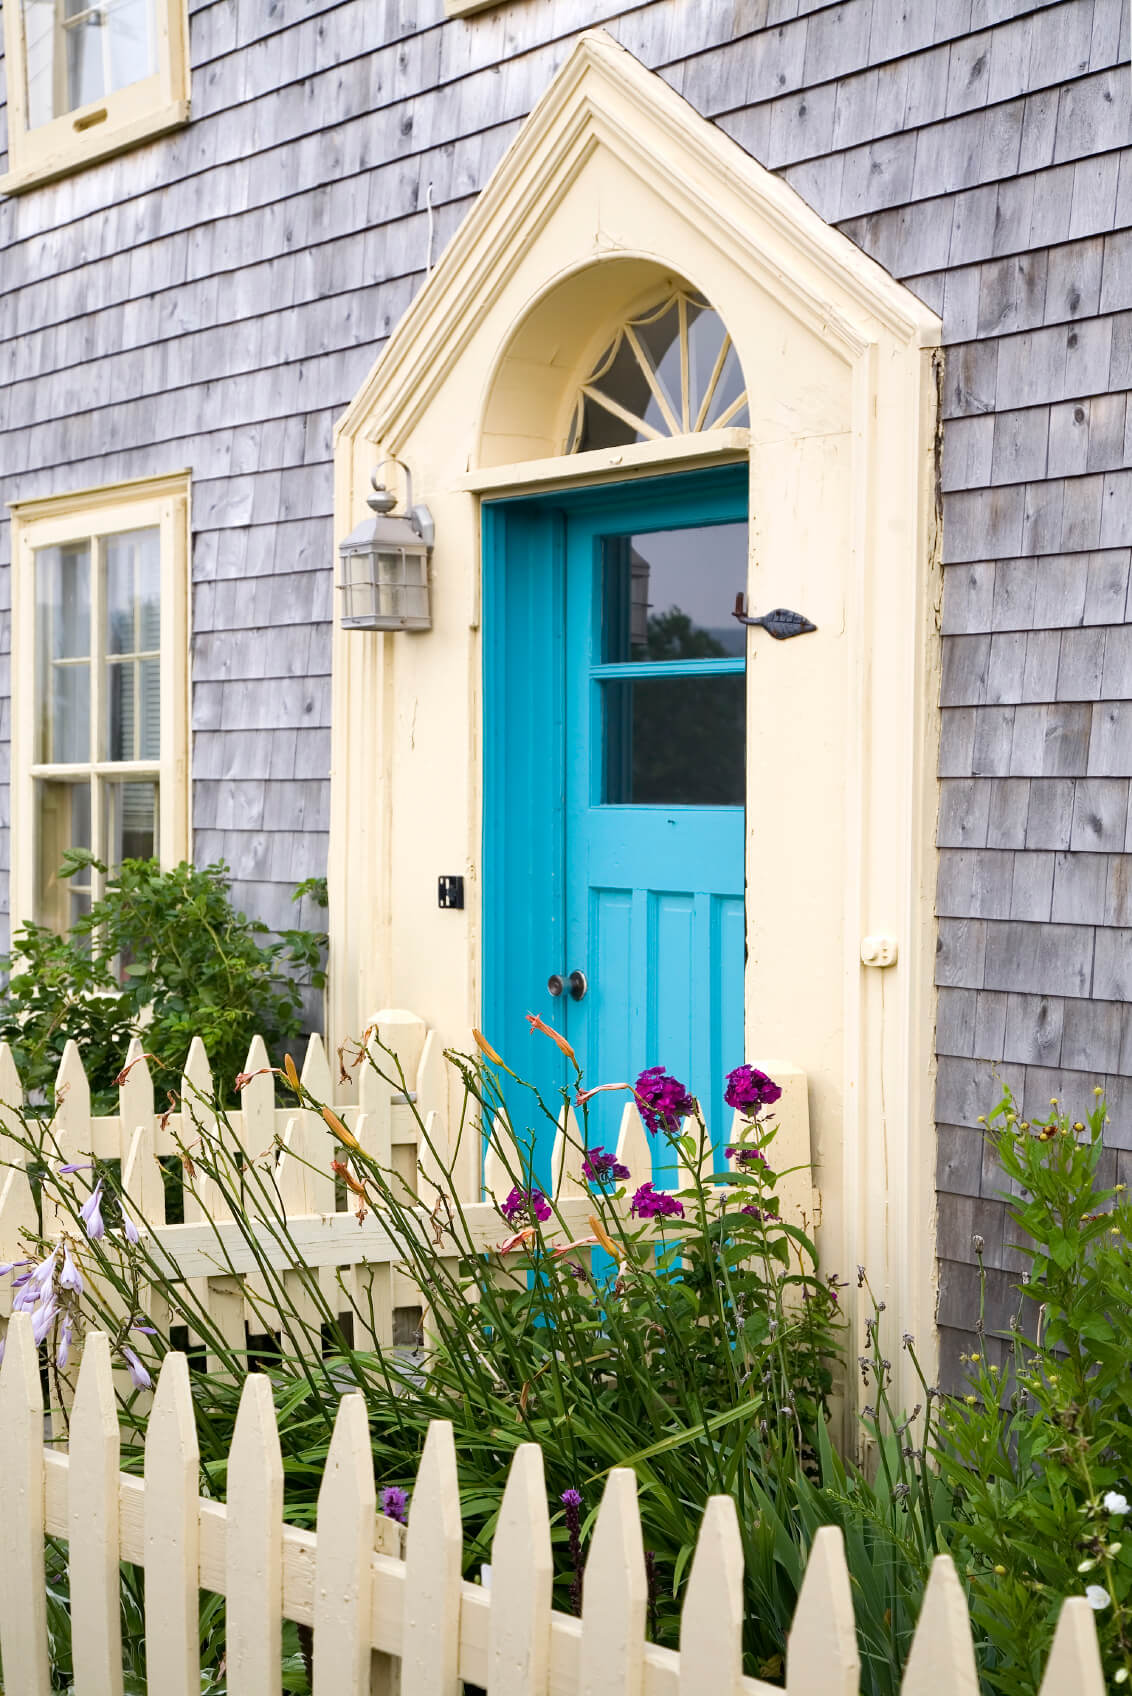 The front door is painted neon blue and beige as well. The door has a window and a transom right above it.